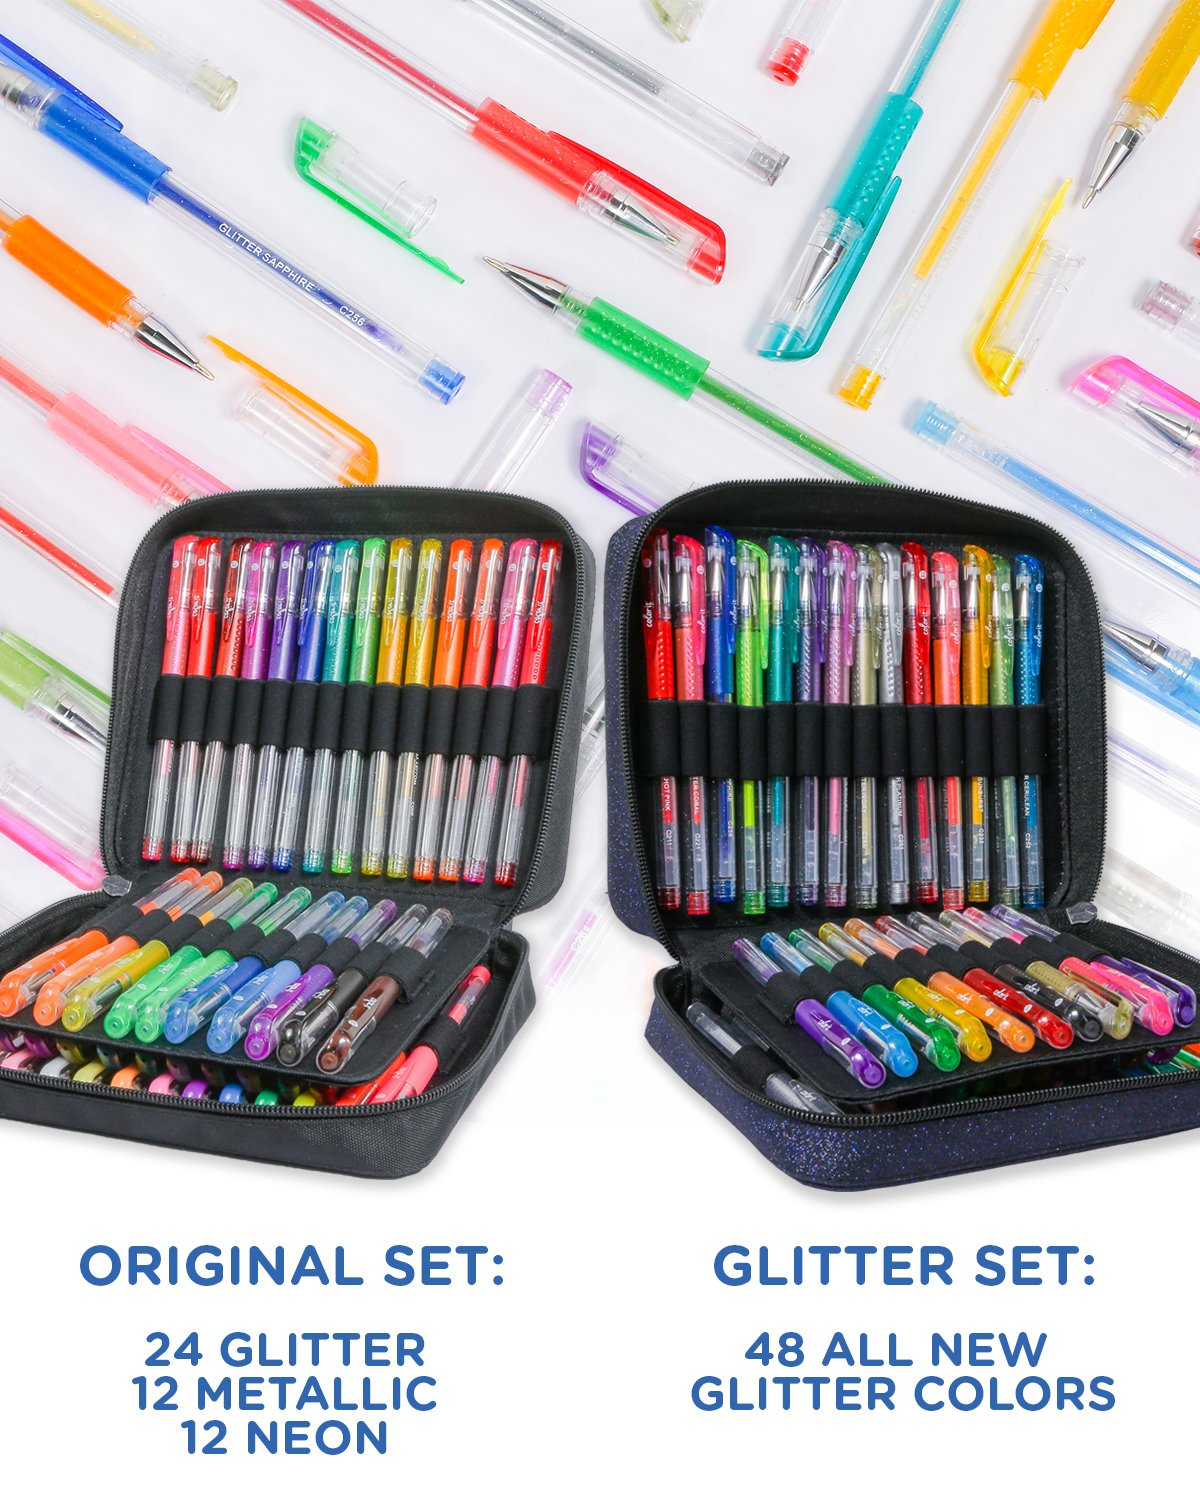 ColorIt 96 Gel Pens For Adult Coloring Books - 2 Travel Case Gel Pen Sets with 72 Glitter, 12 Metallic, 12 Neon Plus 96 Matching Colored Gel Ink Refills by ColorIt (Image #2)